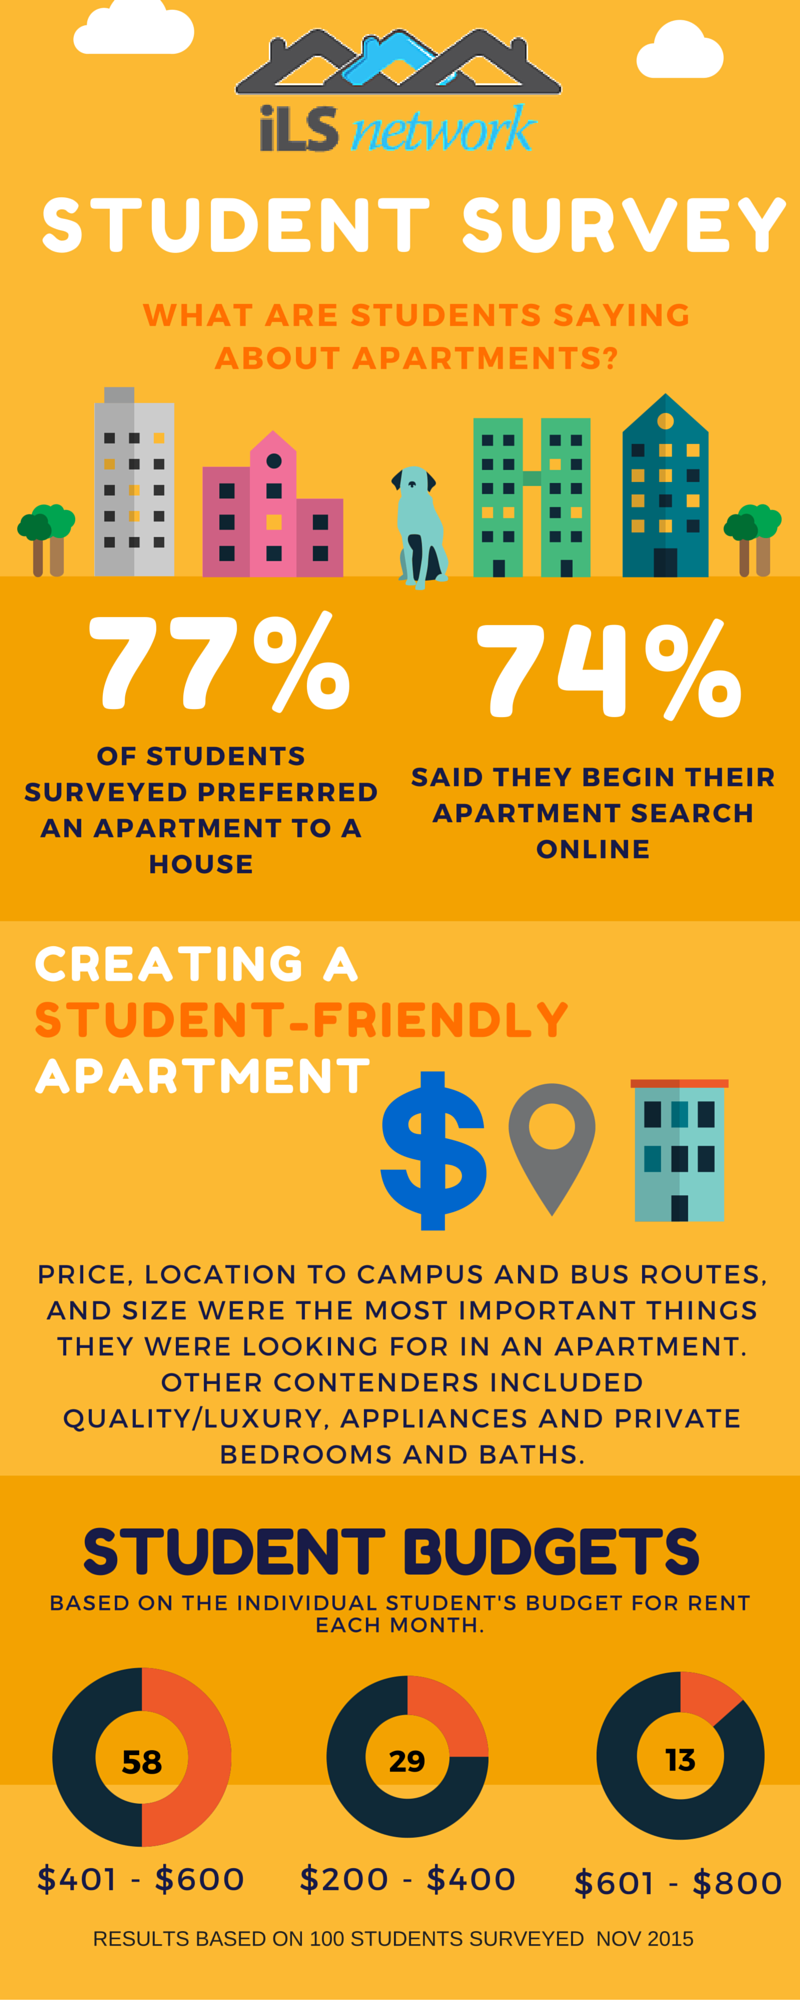 Infographic showing the results of a college student survey on apartment options